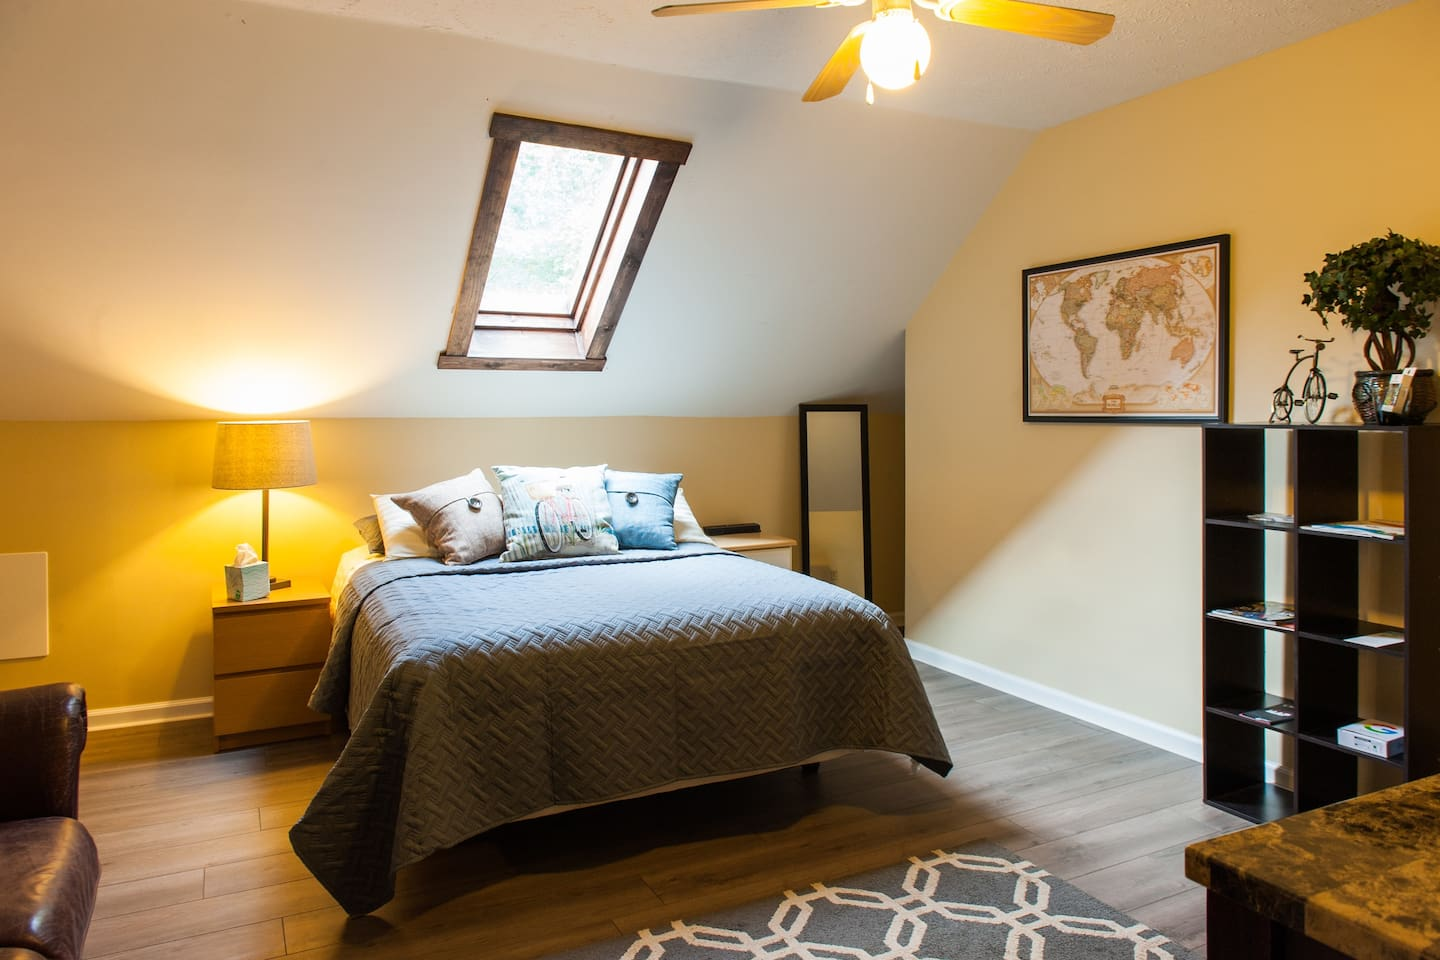 Enjoy a great nights sleep in a comfy queen sized bed! And be sure to pin where you are from on the Travelers Map!